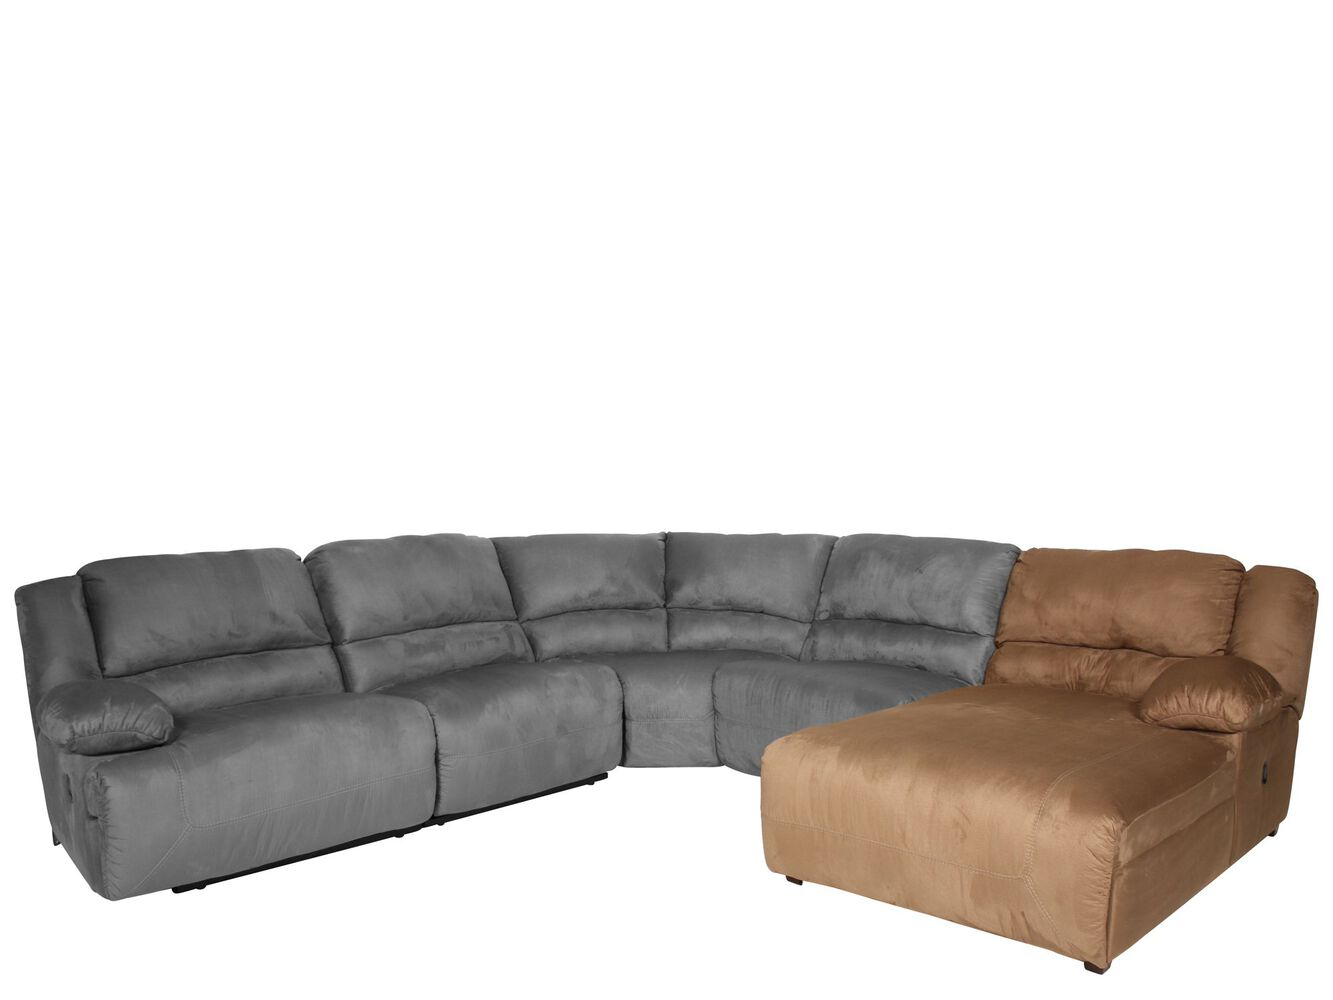 Ashley hogan right arm facing chaise mathis brothers for Ashley furniture sectional sofas chaise